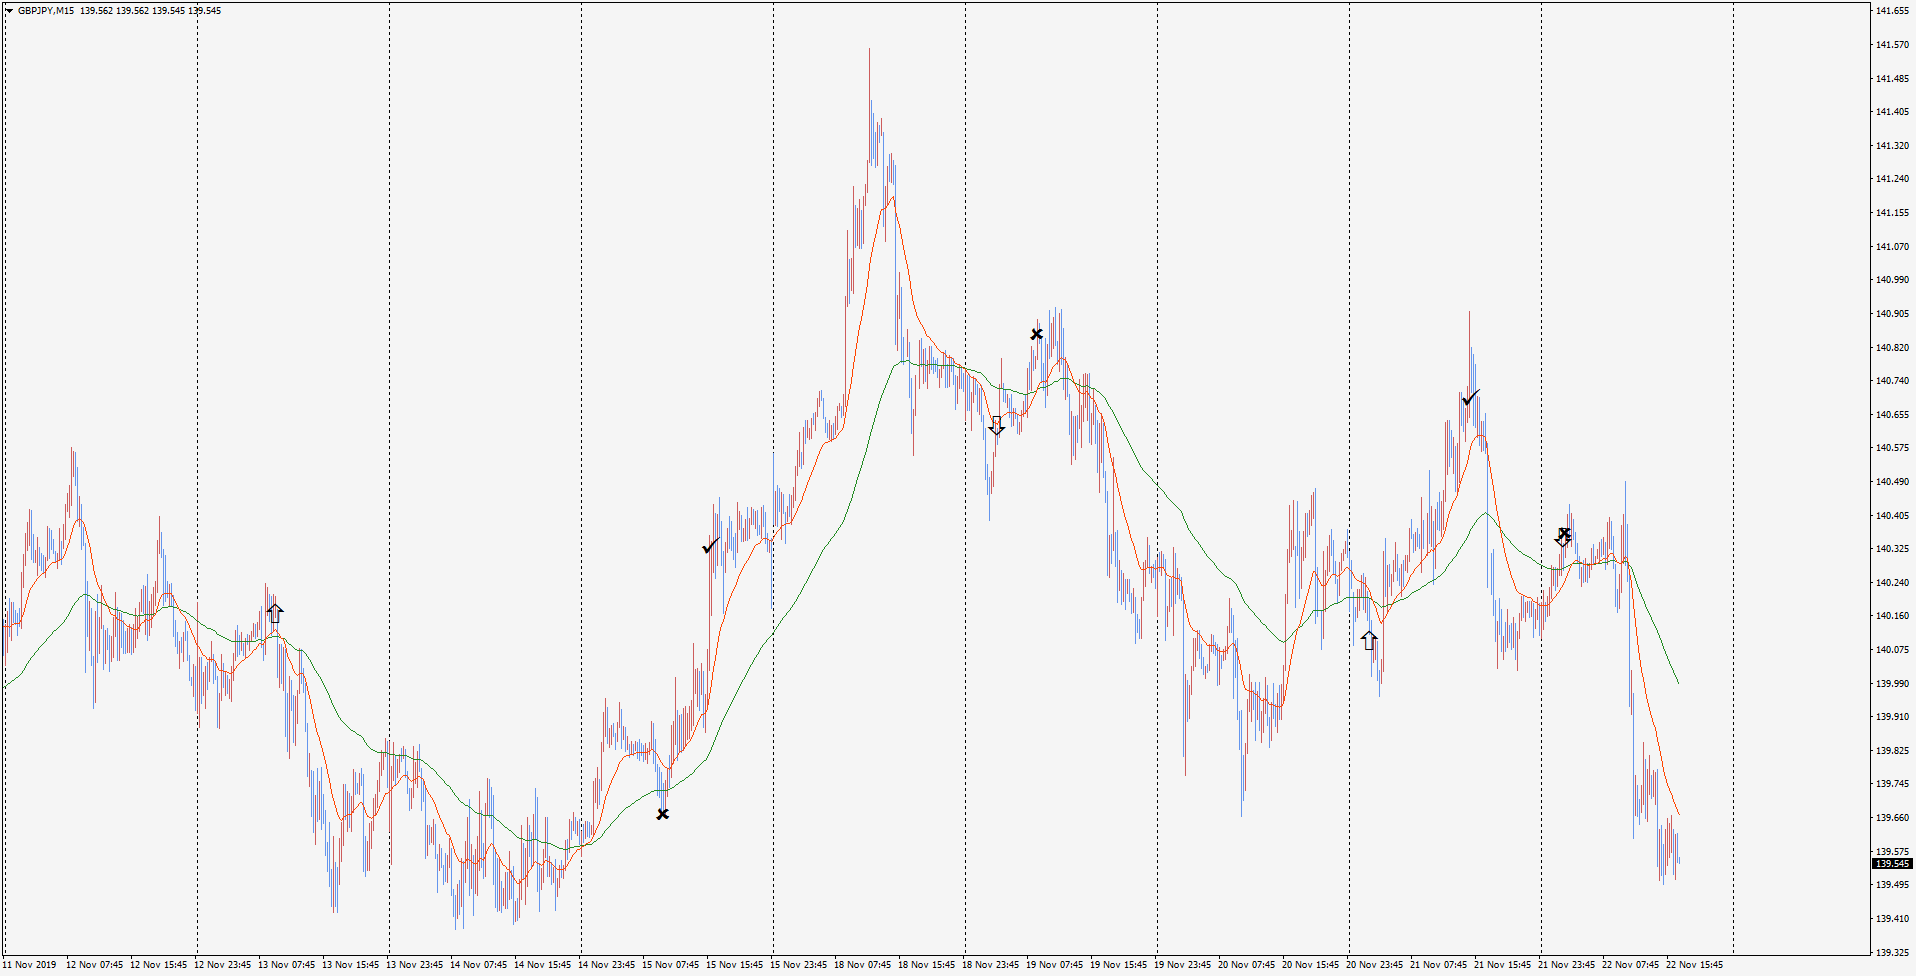 19-11-23-gbpjpy-m15-tradexfin-limited.png